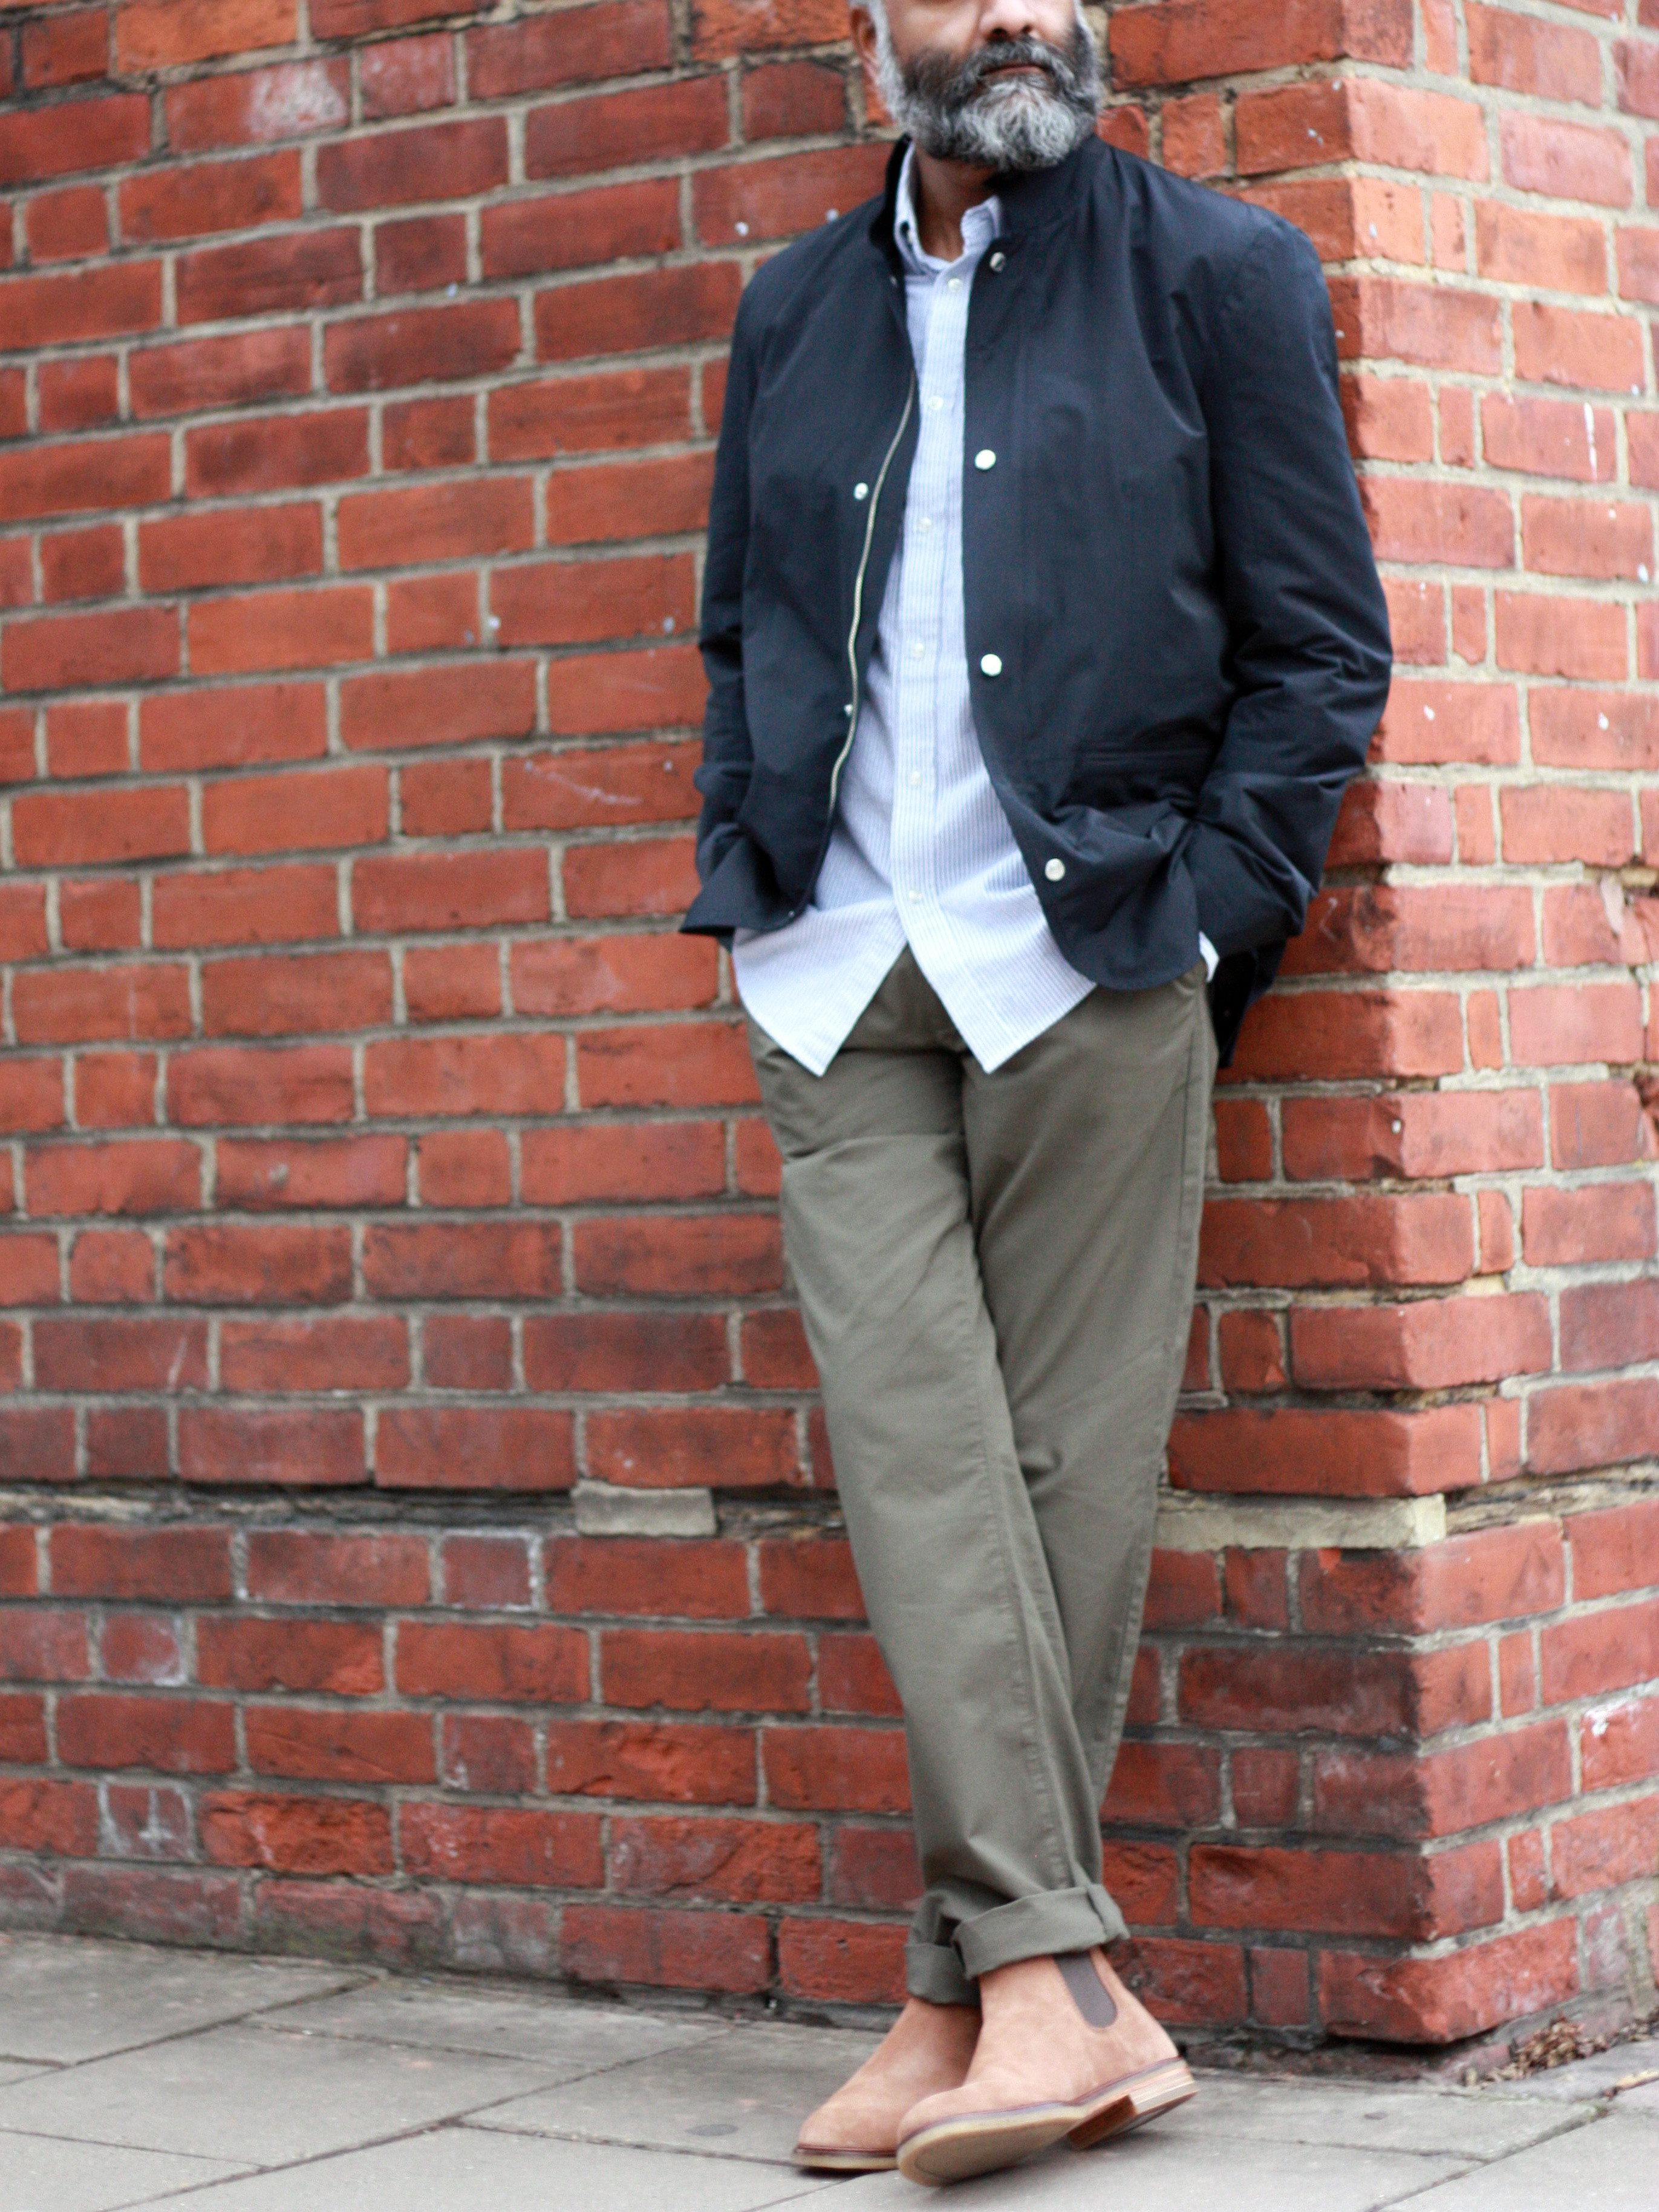 Men's outfit idea for 2021 with utility jacket, striped casual shirt, colored chinos, brown chelsea boots. Suitable for spring, summer and fall.